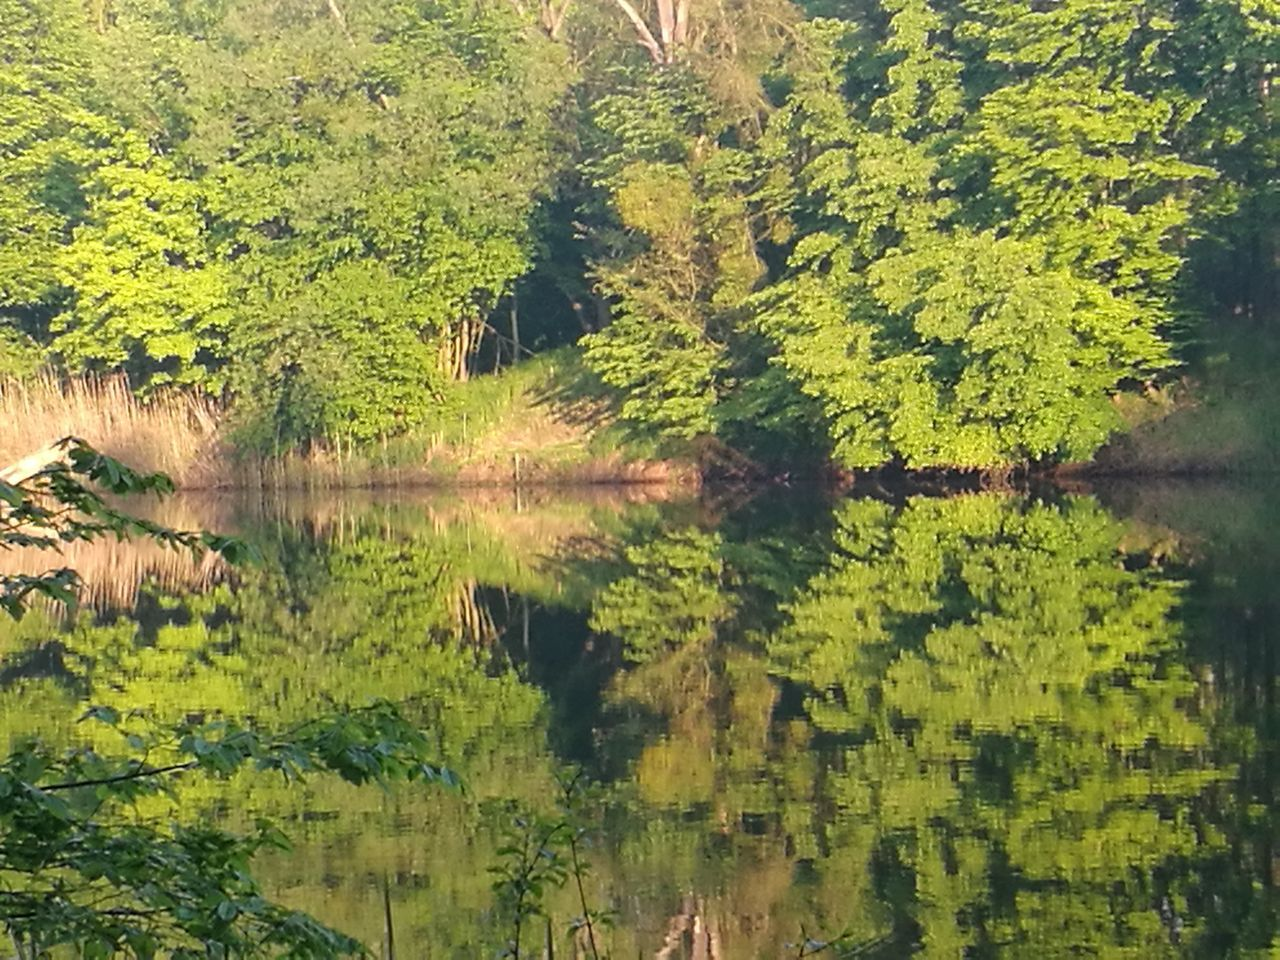 reflection, nature, lake, tree, standing water, forest, green color, water, tranquility, lush foliage, outdoors, beauty in nature, tranquil scene, no people, growth, day, scenics